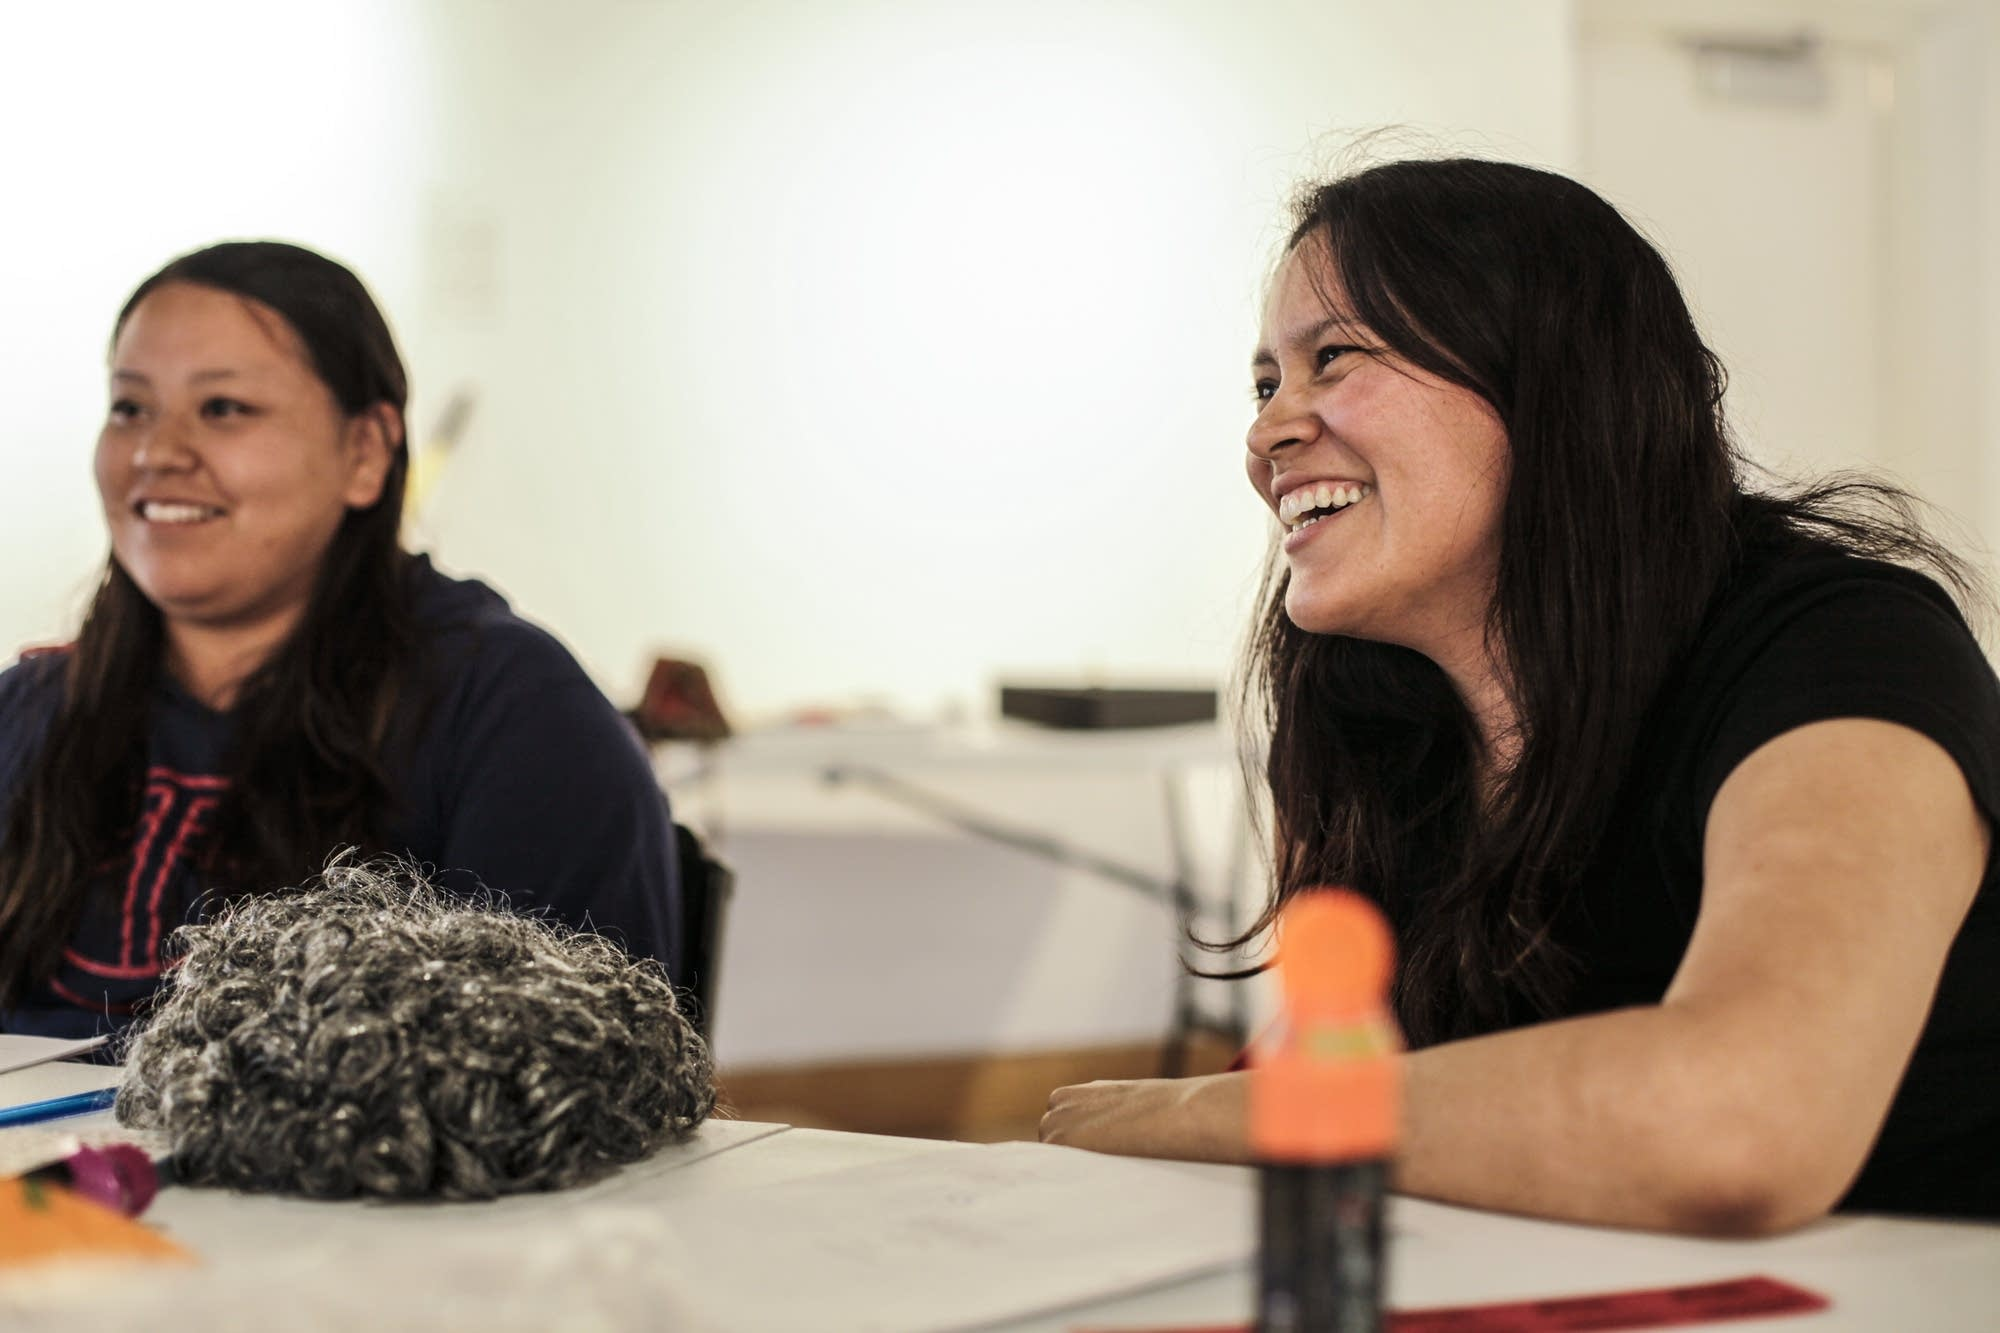 Castmates laugh together as they rehearse their play in Minneapolis.